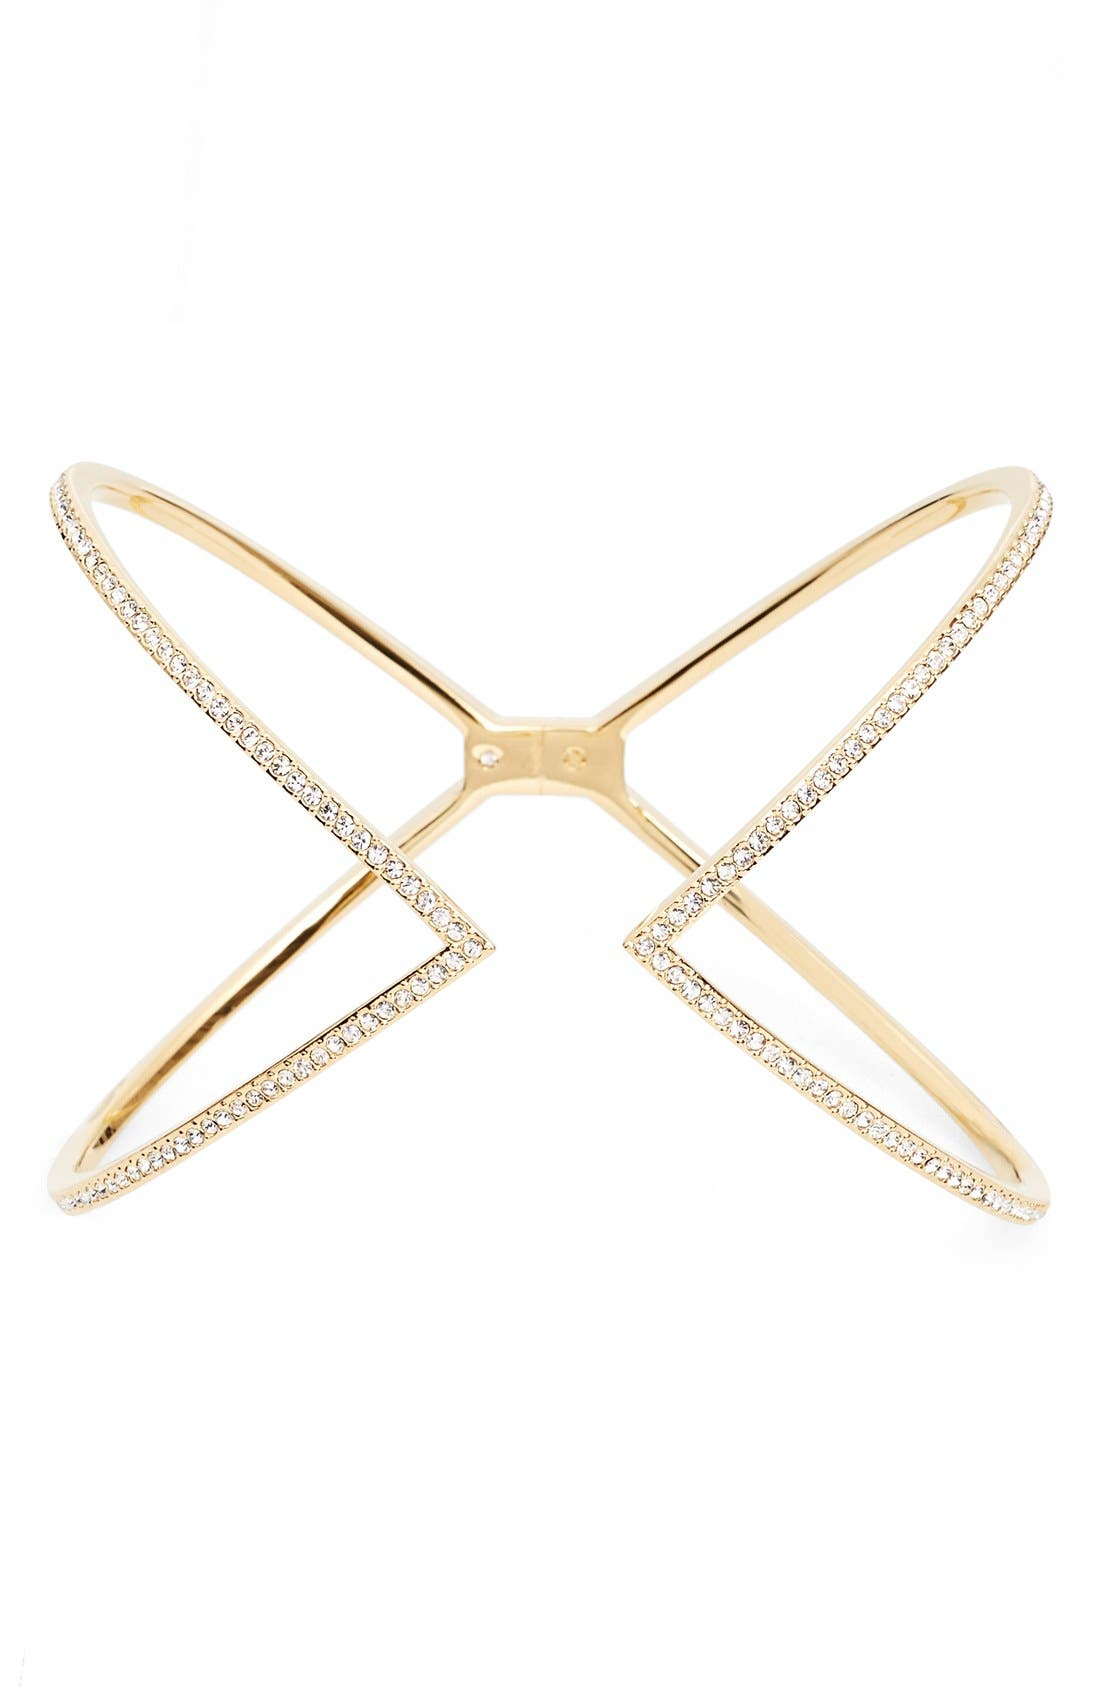 Nadri 'Starry Night' Hinge Cuff